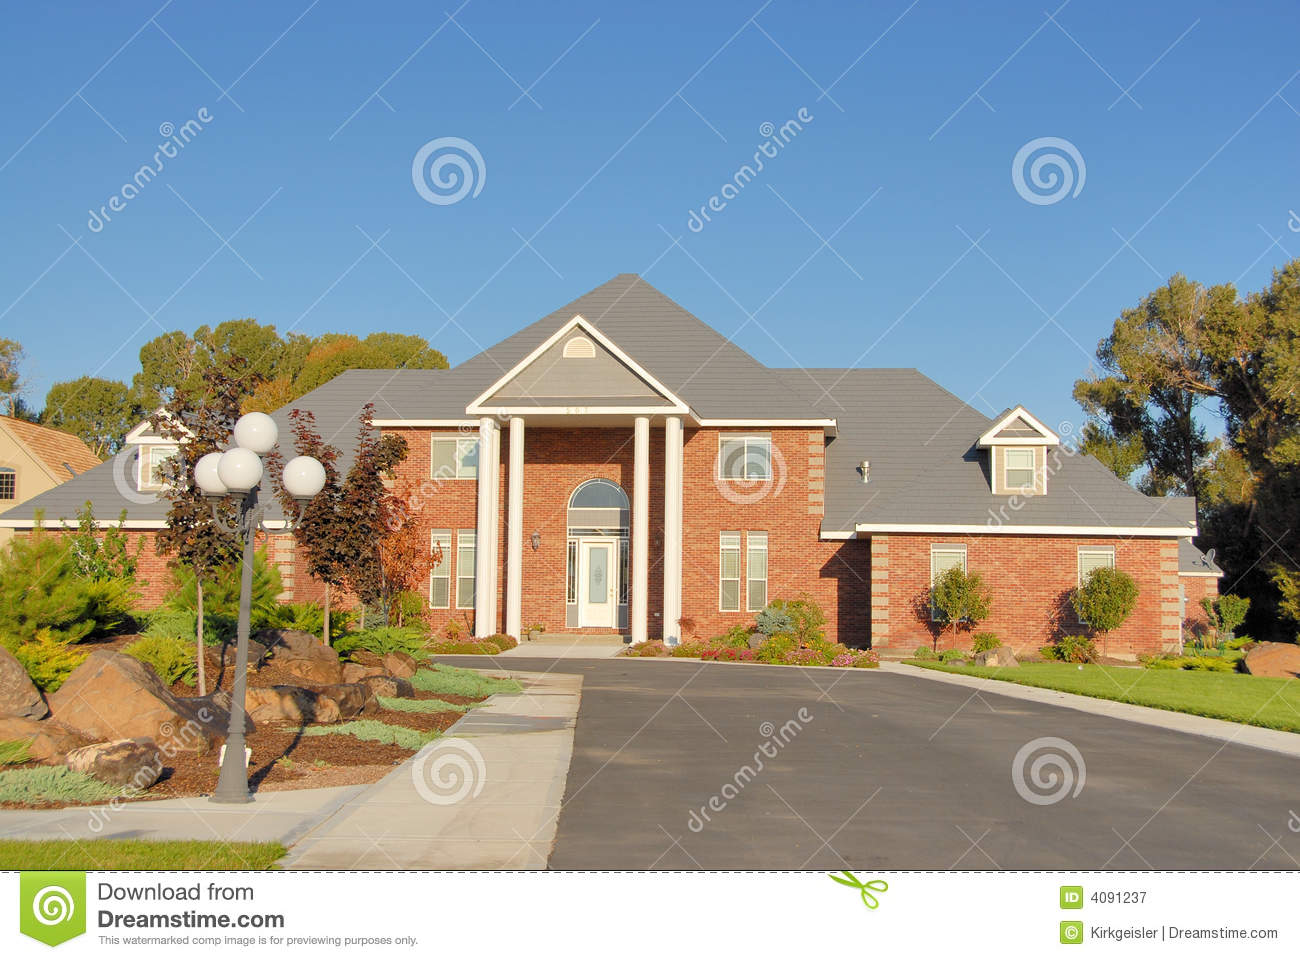 Luxury home royalty free stock photography image 4091237 for Free luxury home images